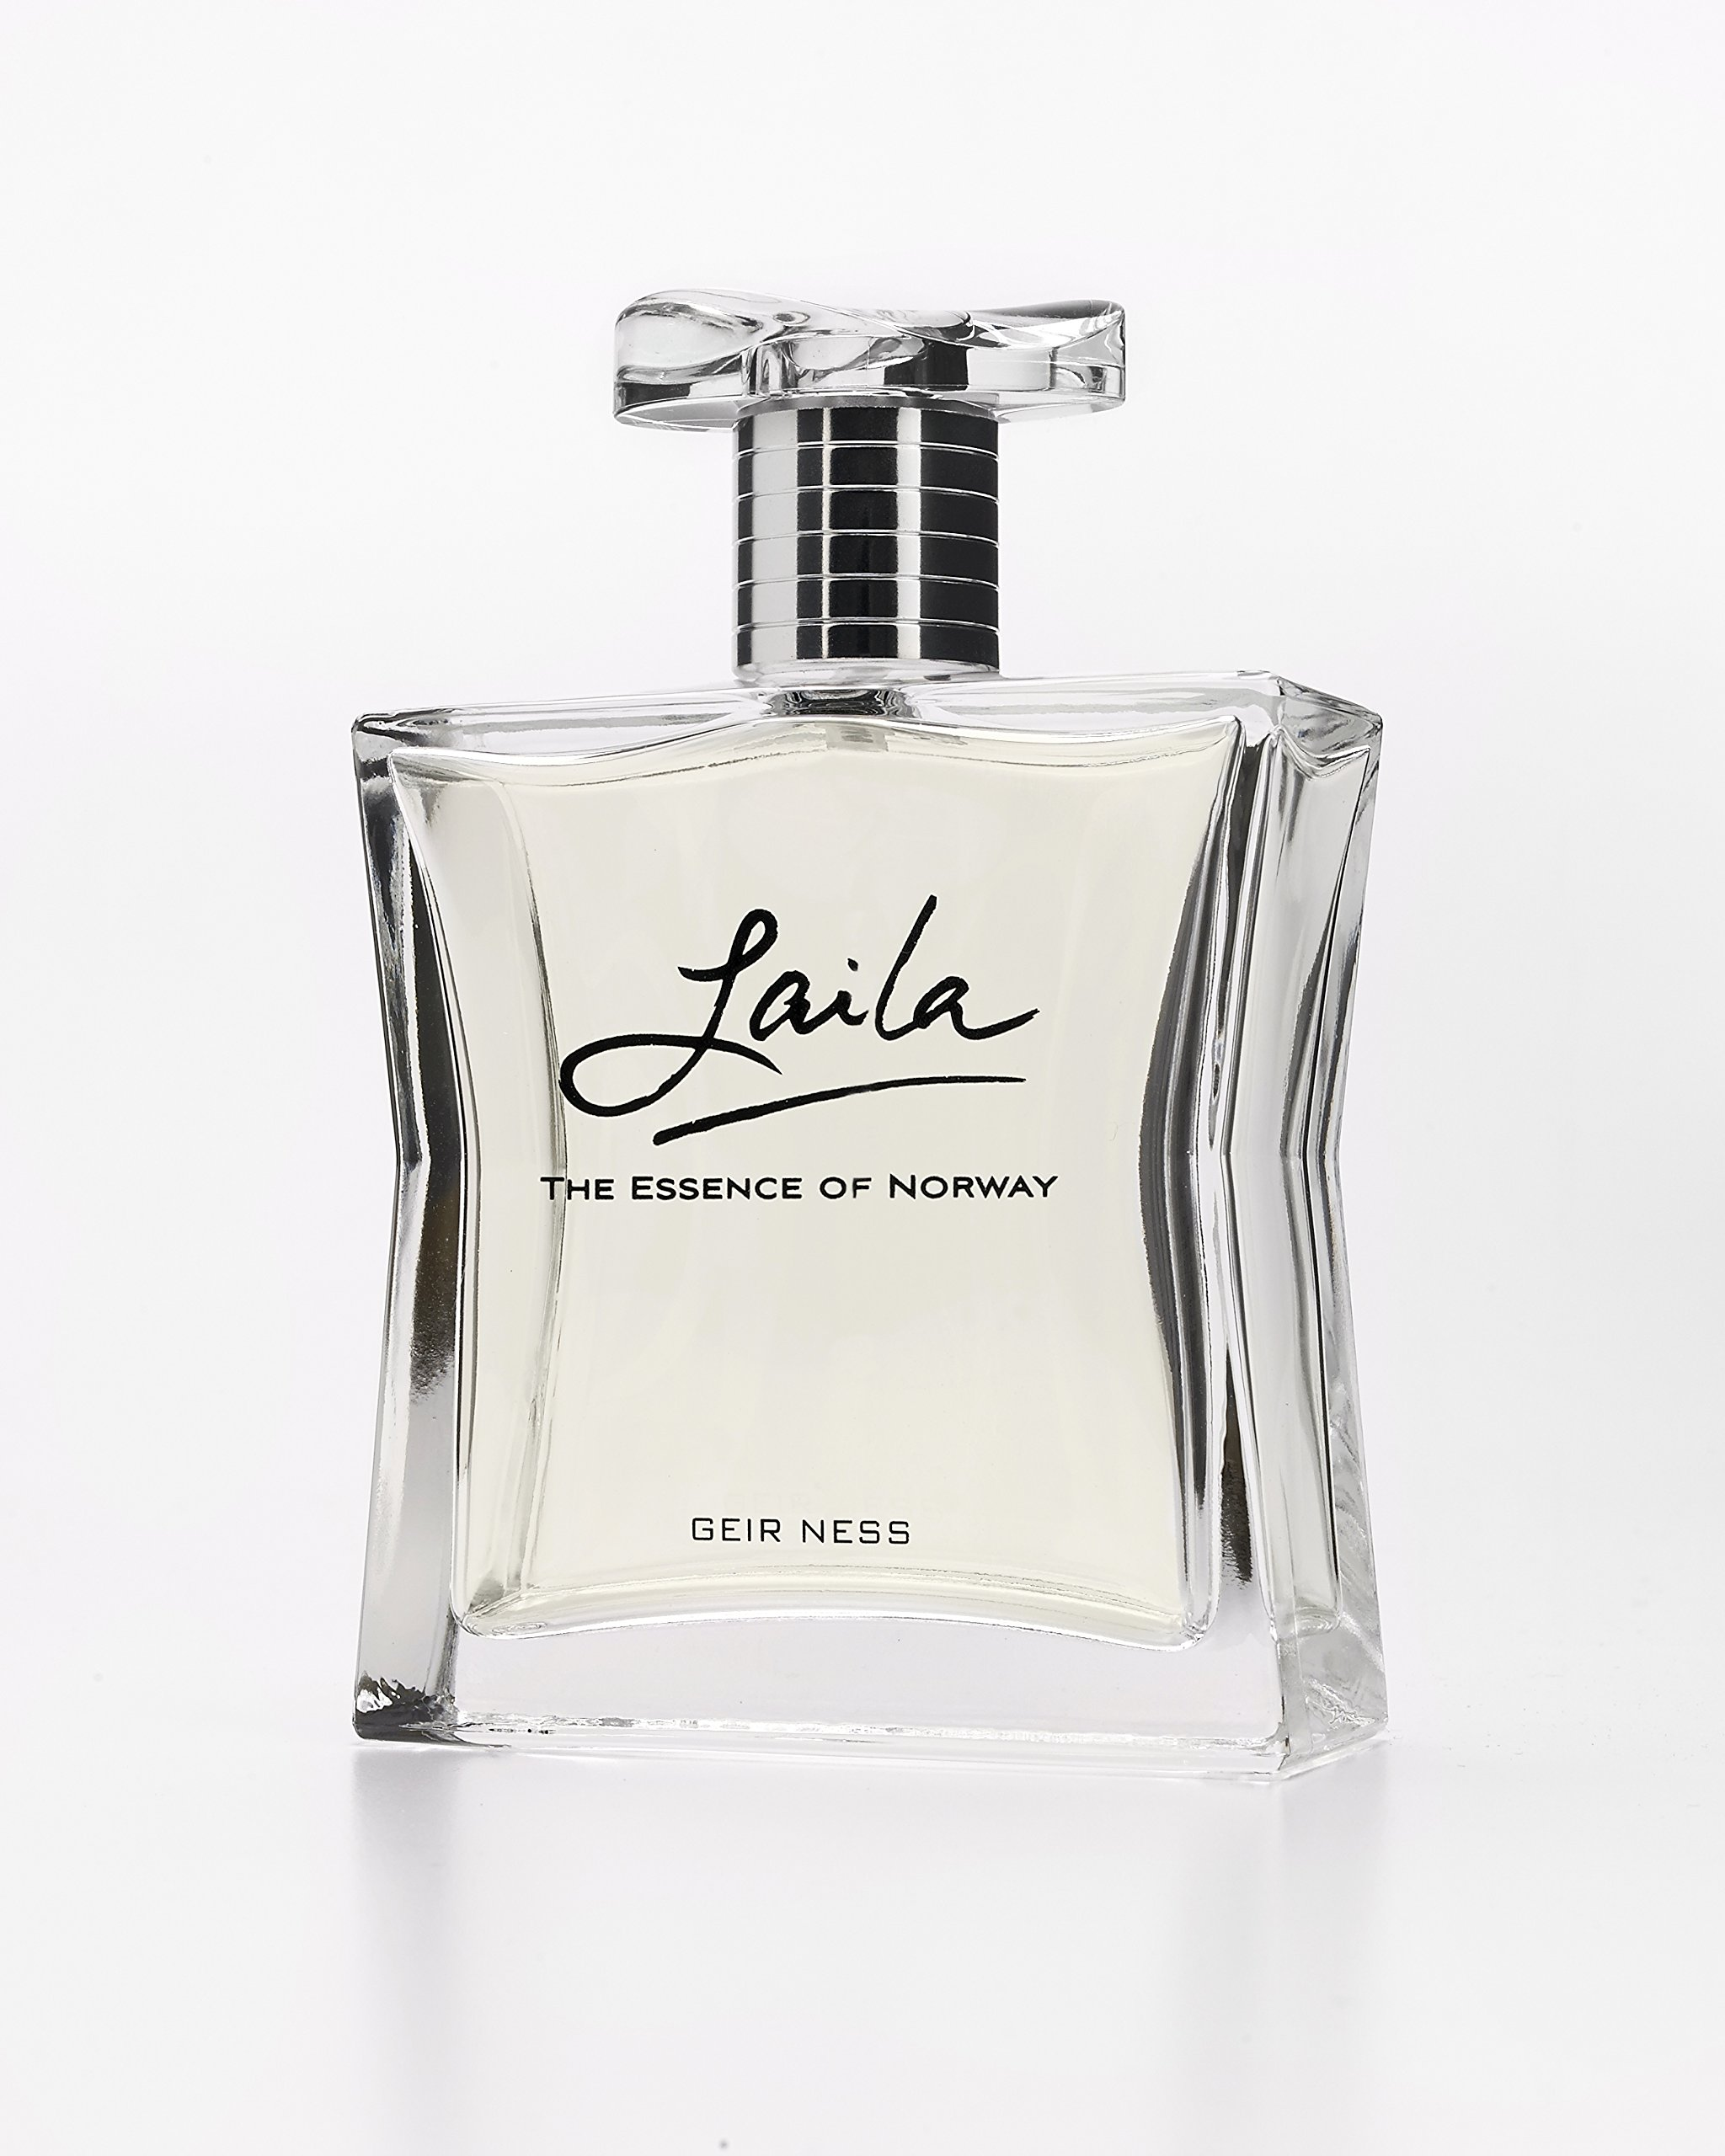 Laila By Geir Ness For Women, Eau De Parfum Spray, 3.4-Ounce Bottle